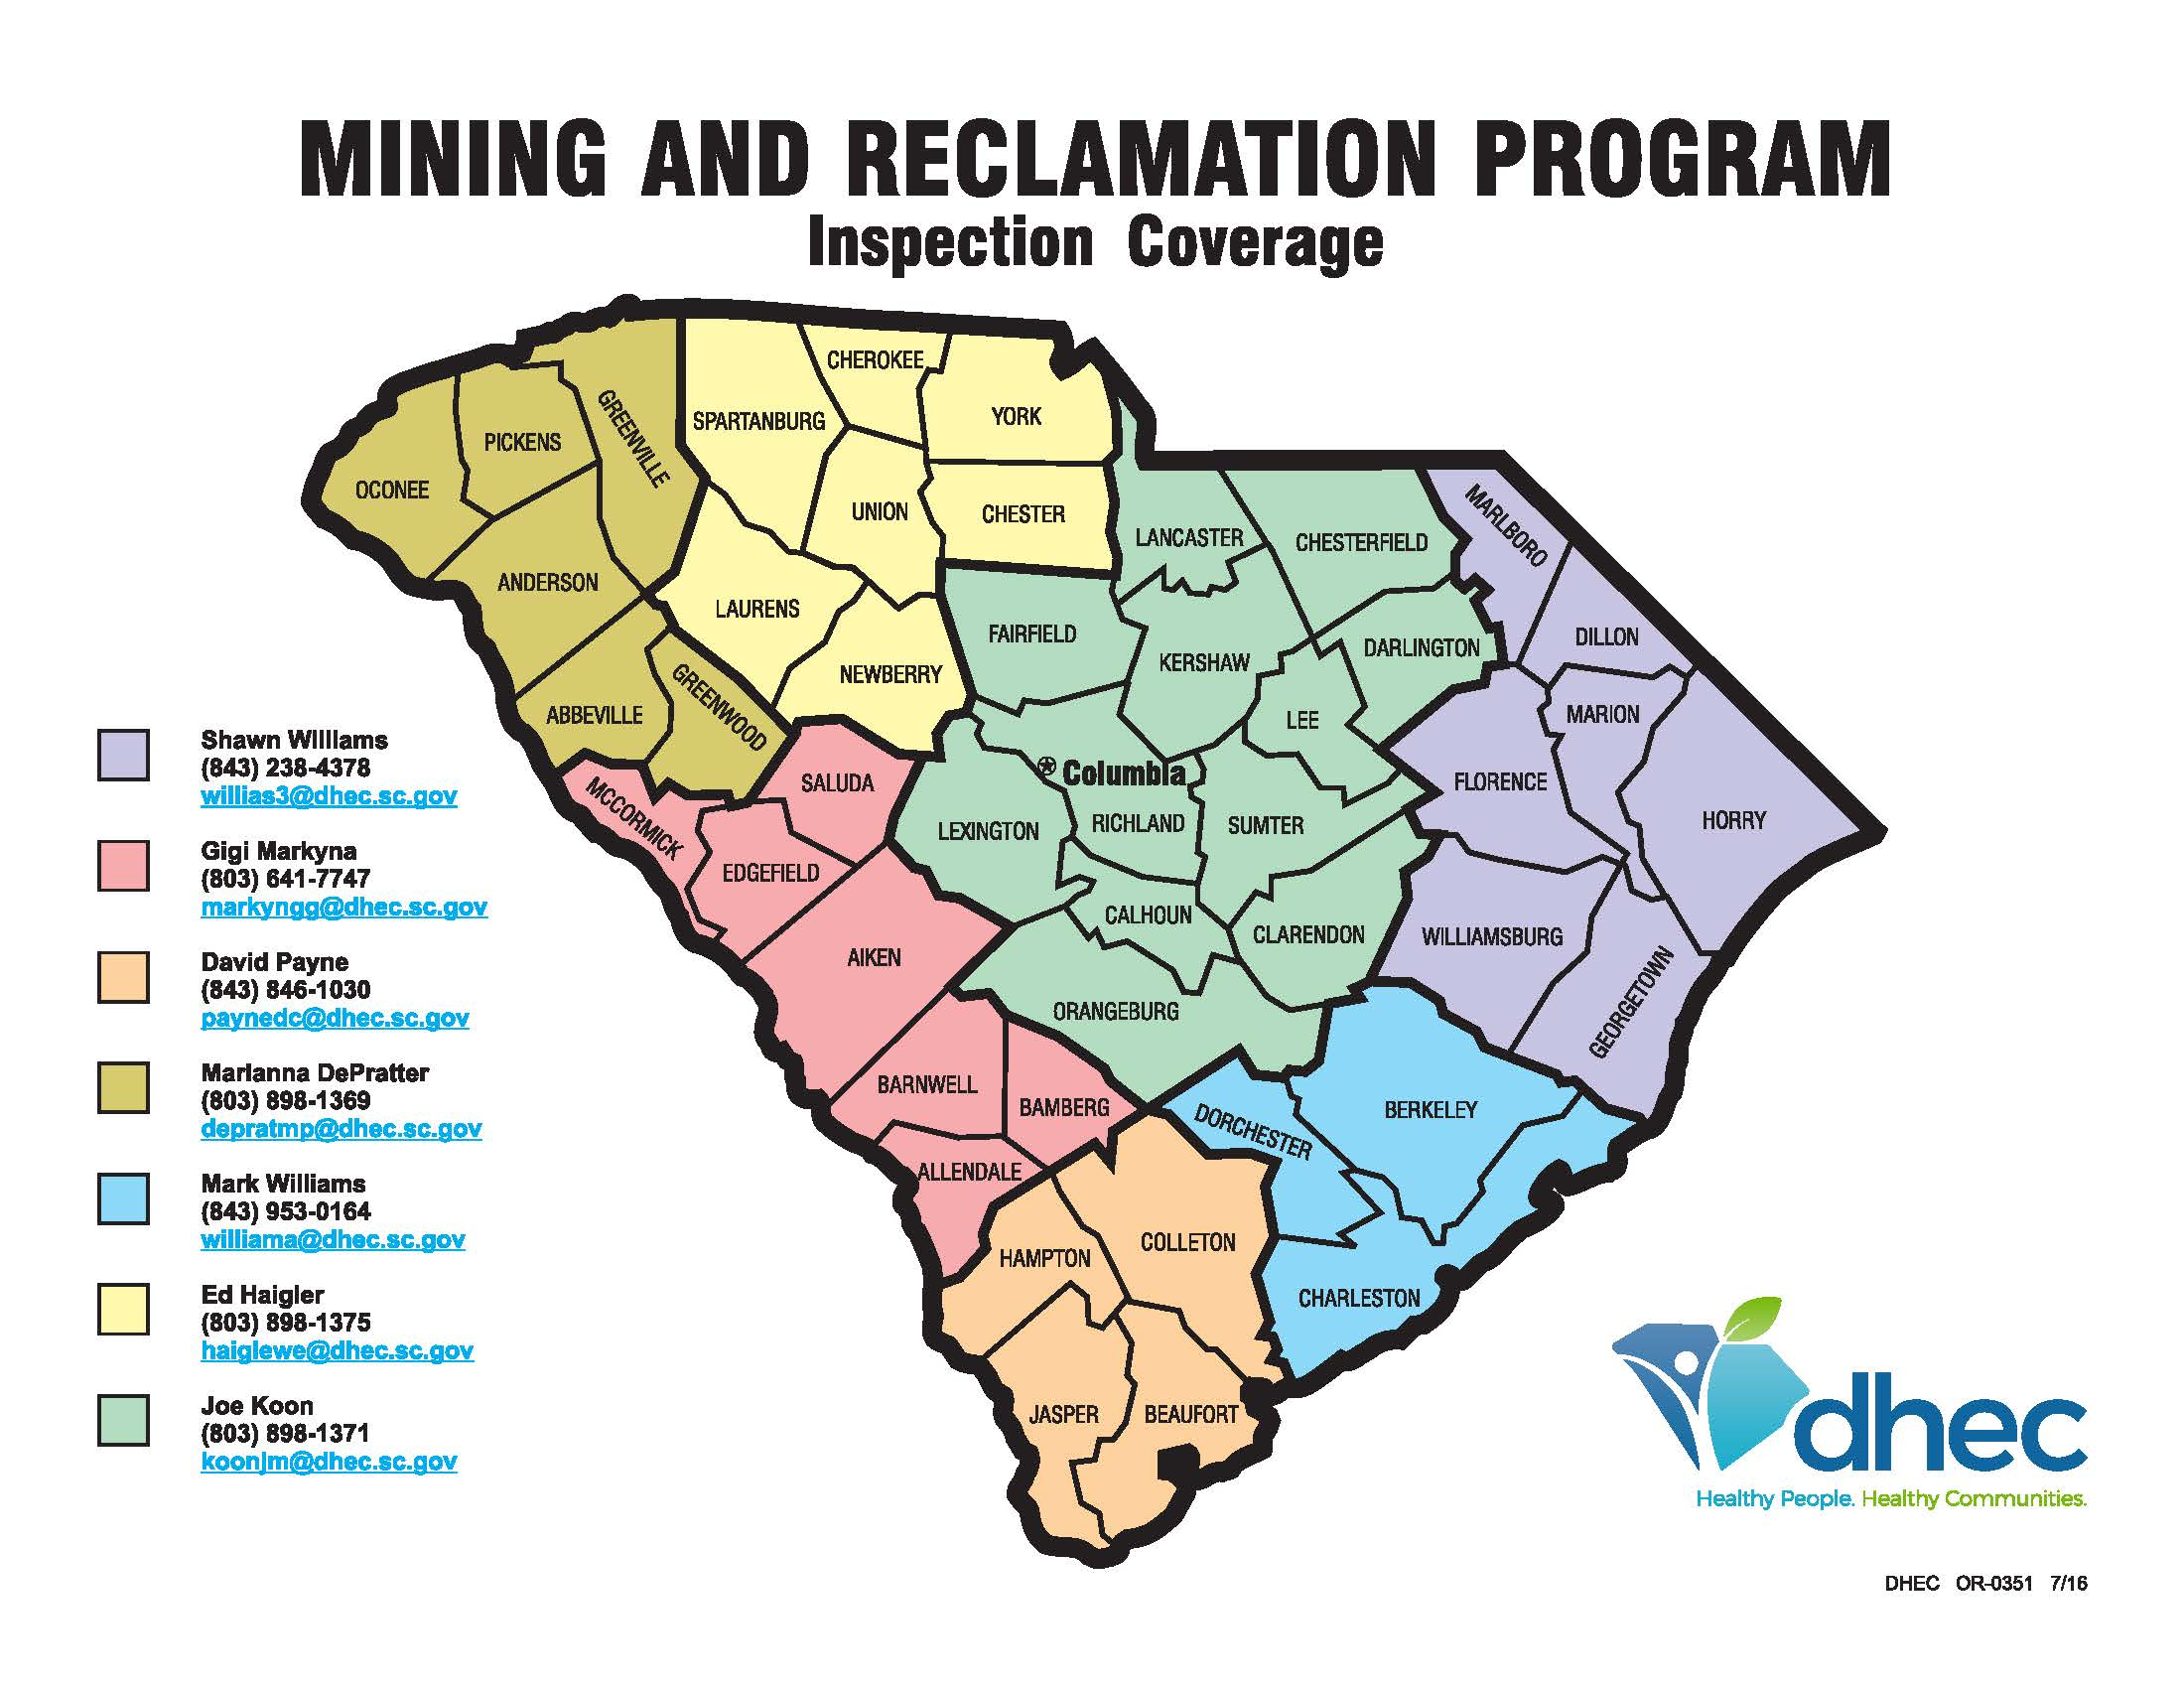 Mining and Reclamation Program